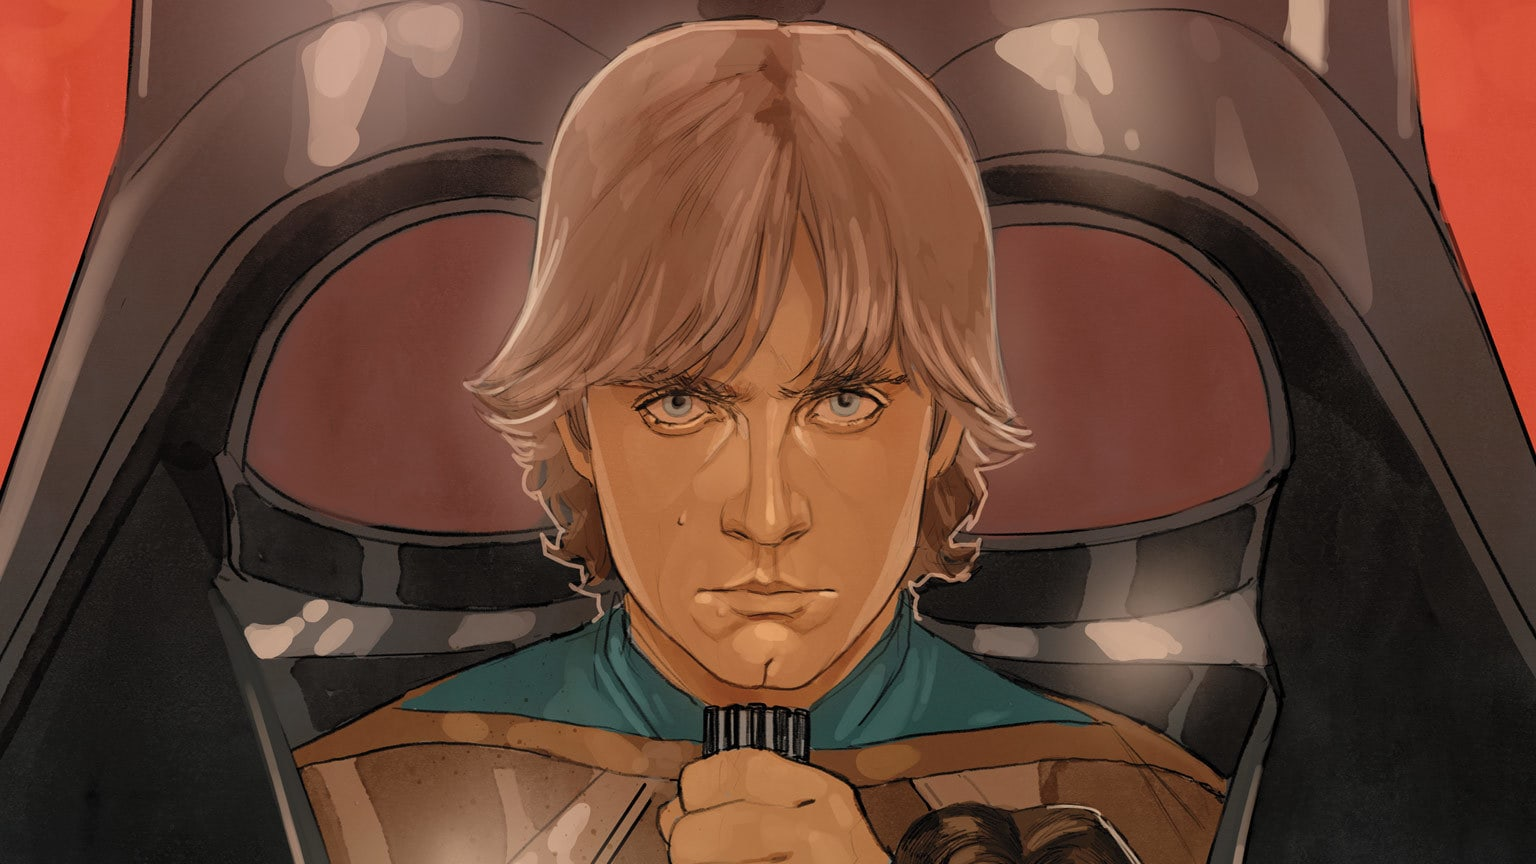 Luke Skywalker Comes Face to Face with Darth Vader in Marvel's Star Wars #75 – Exclusive